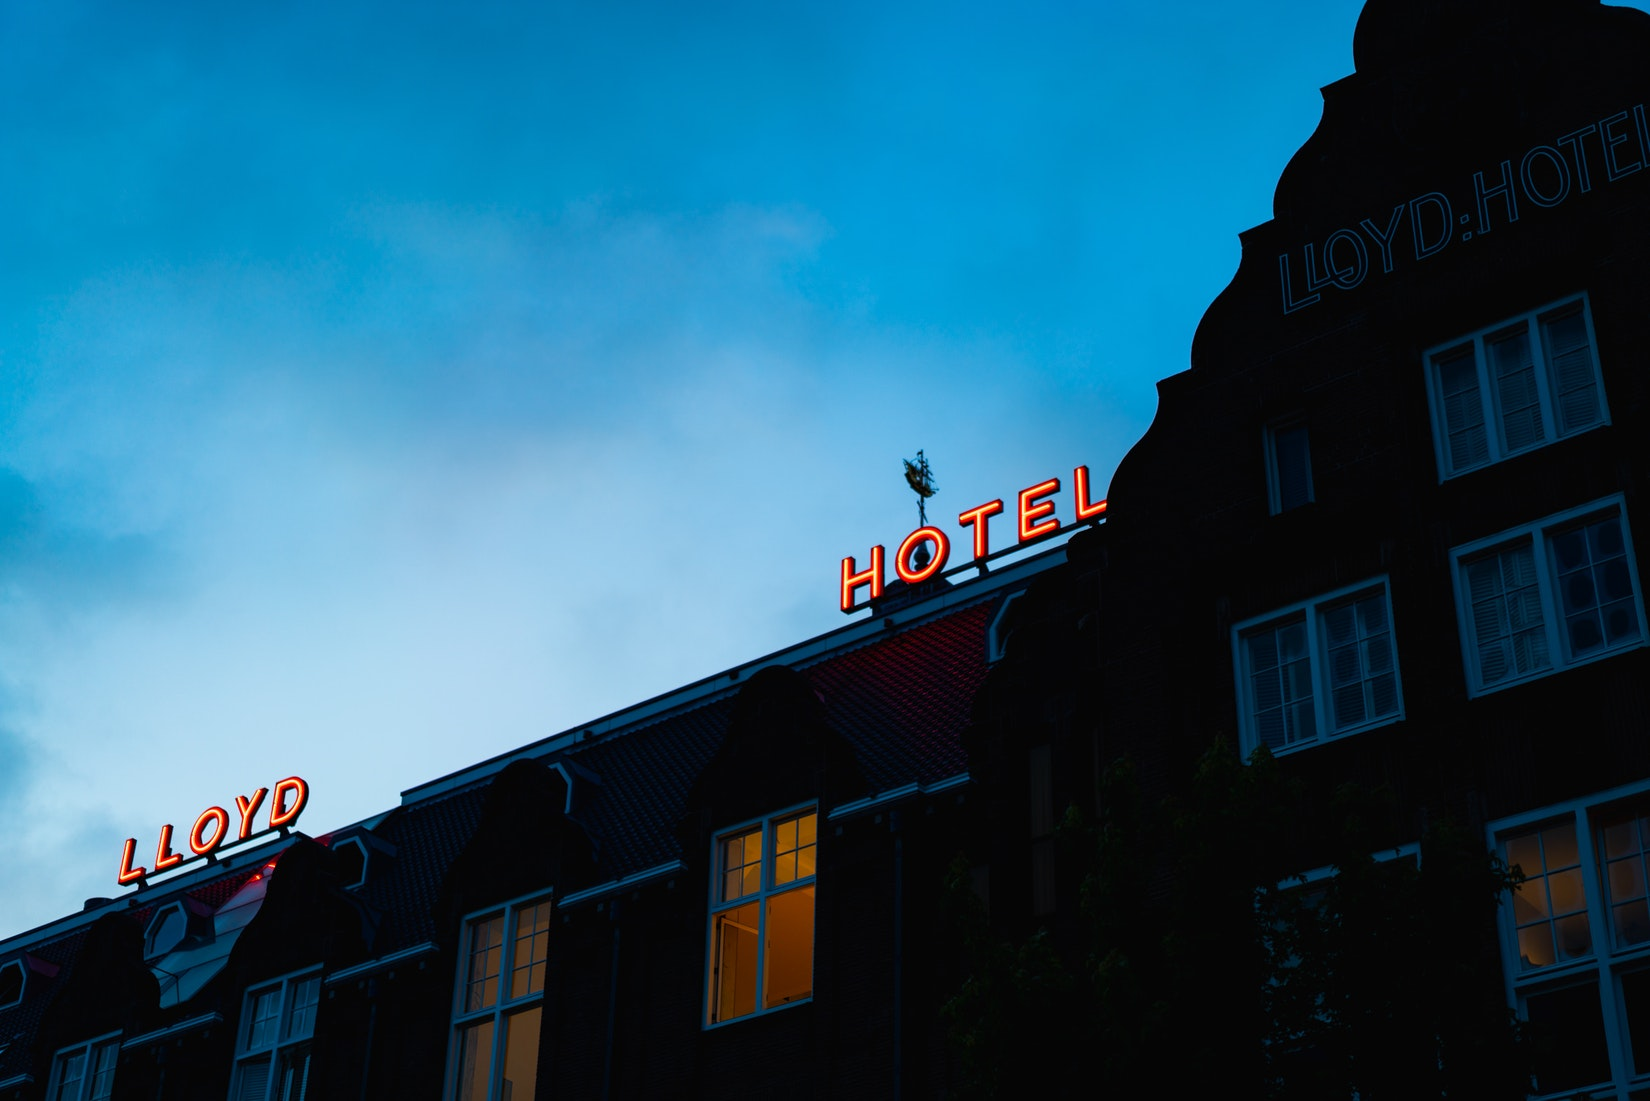 Neon lights of Lloyd Hotel at night